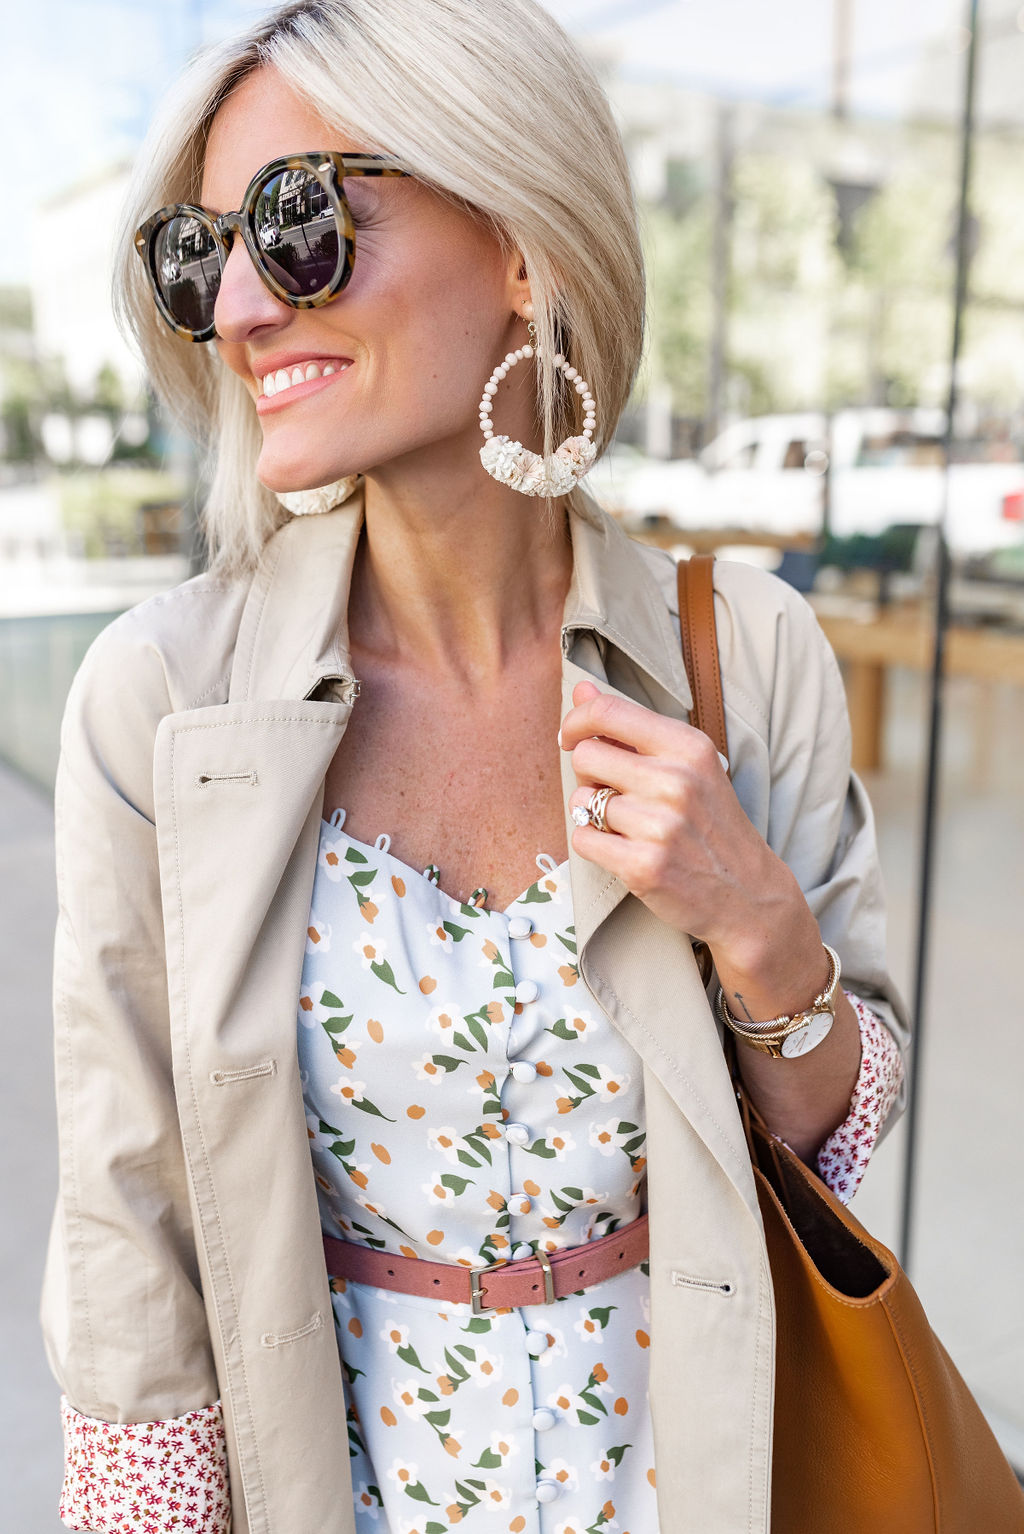 loverly grey fashion outfit